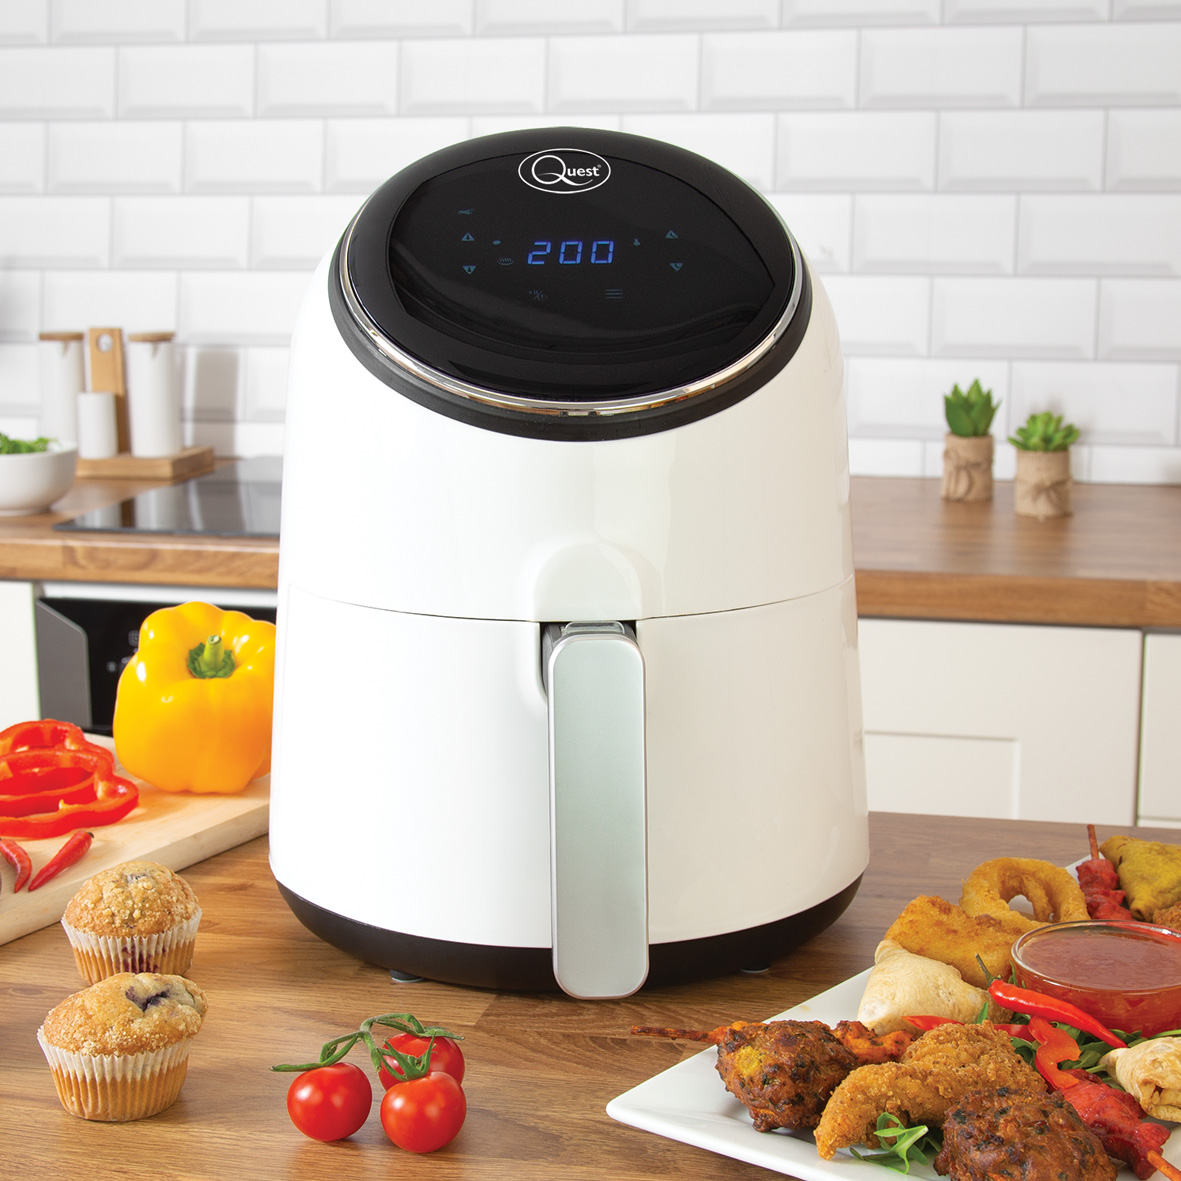 Digital LCD Air Fryer - LCD digital touch display, modern, sleek and easy to wipe clean.